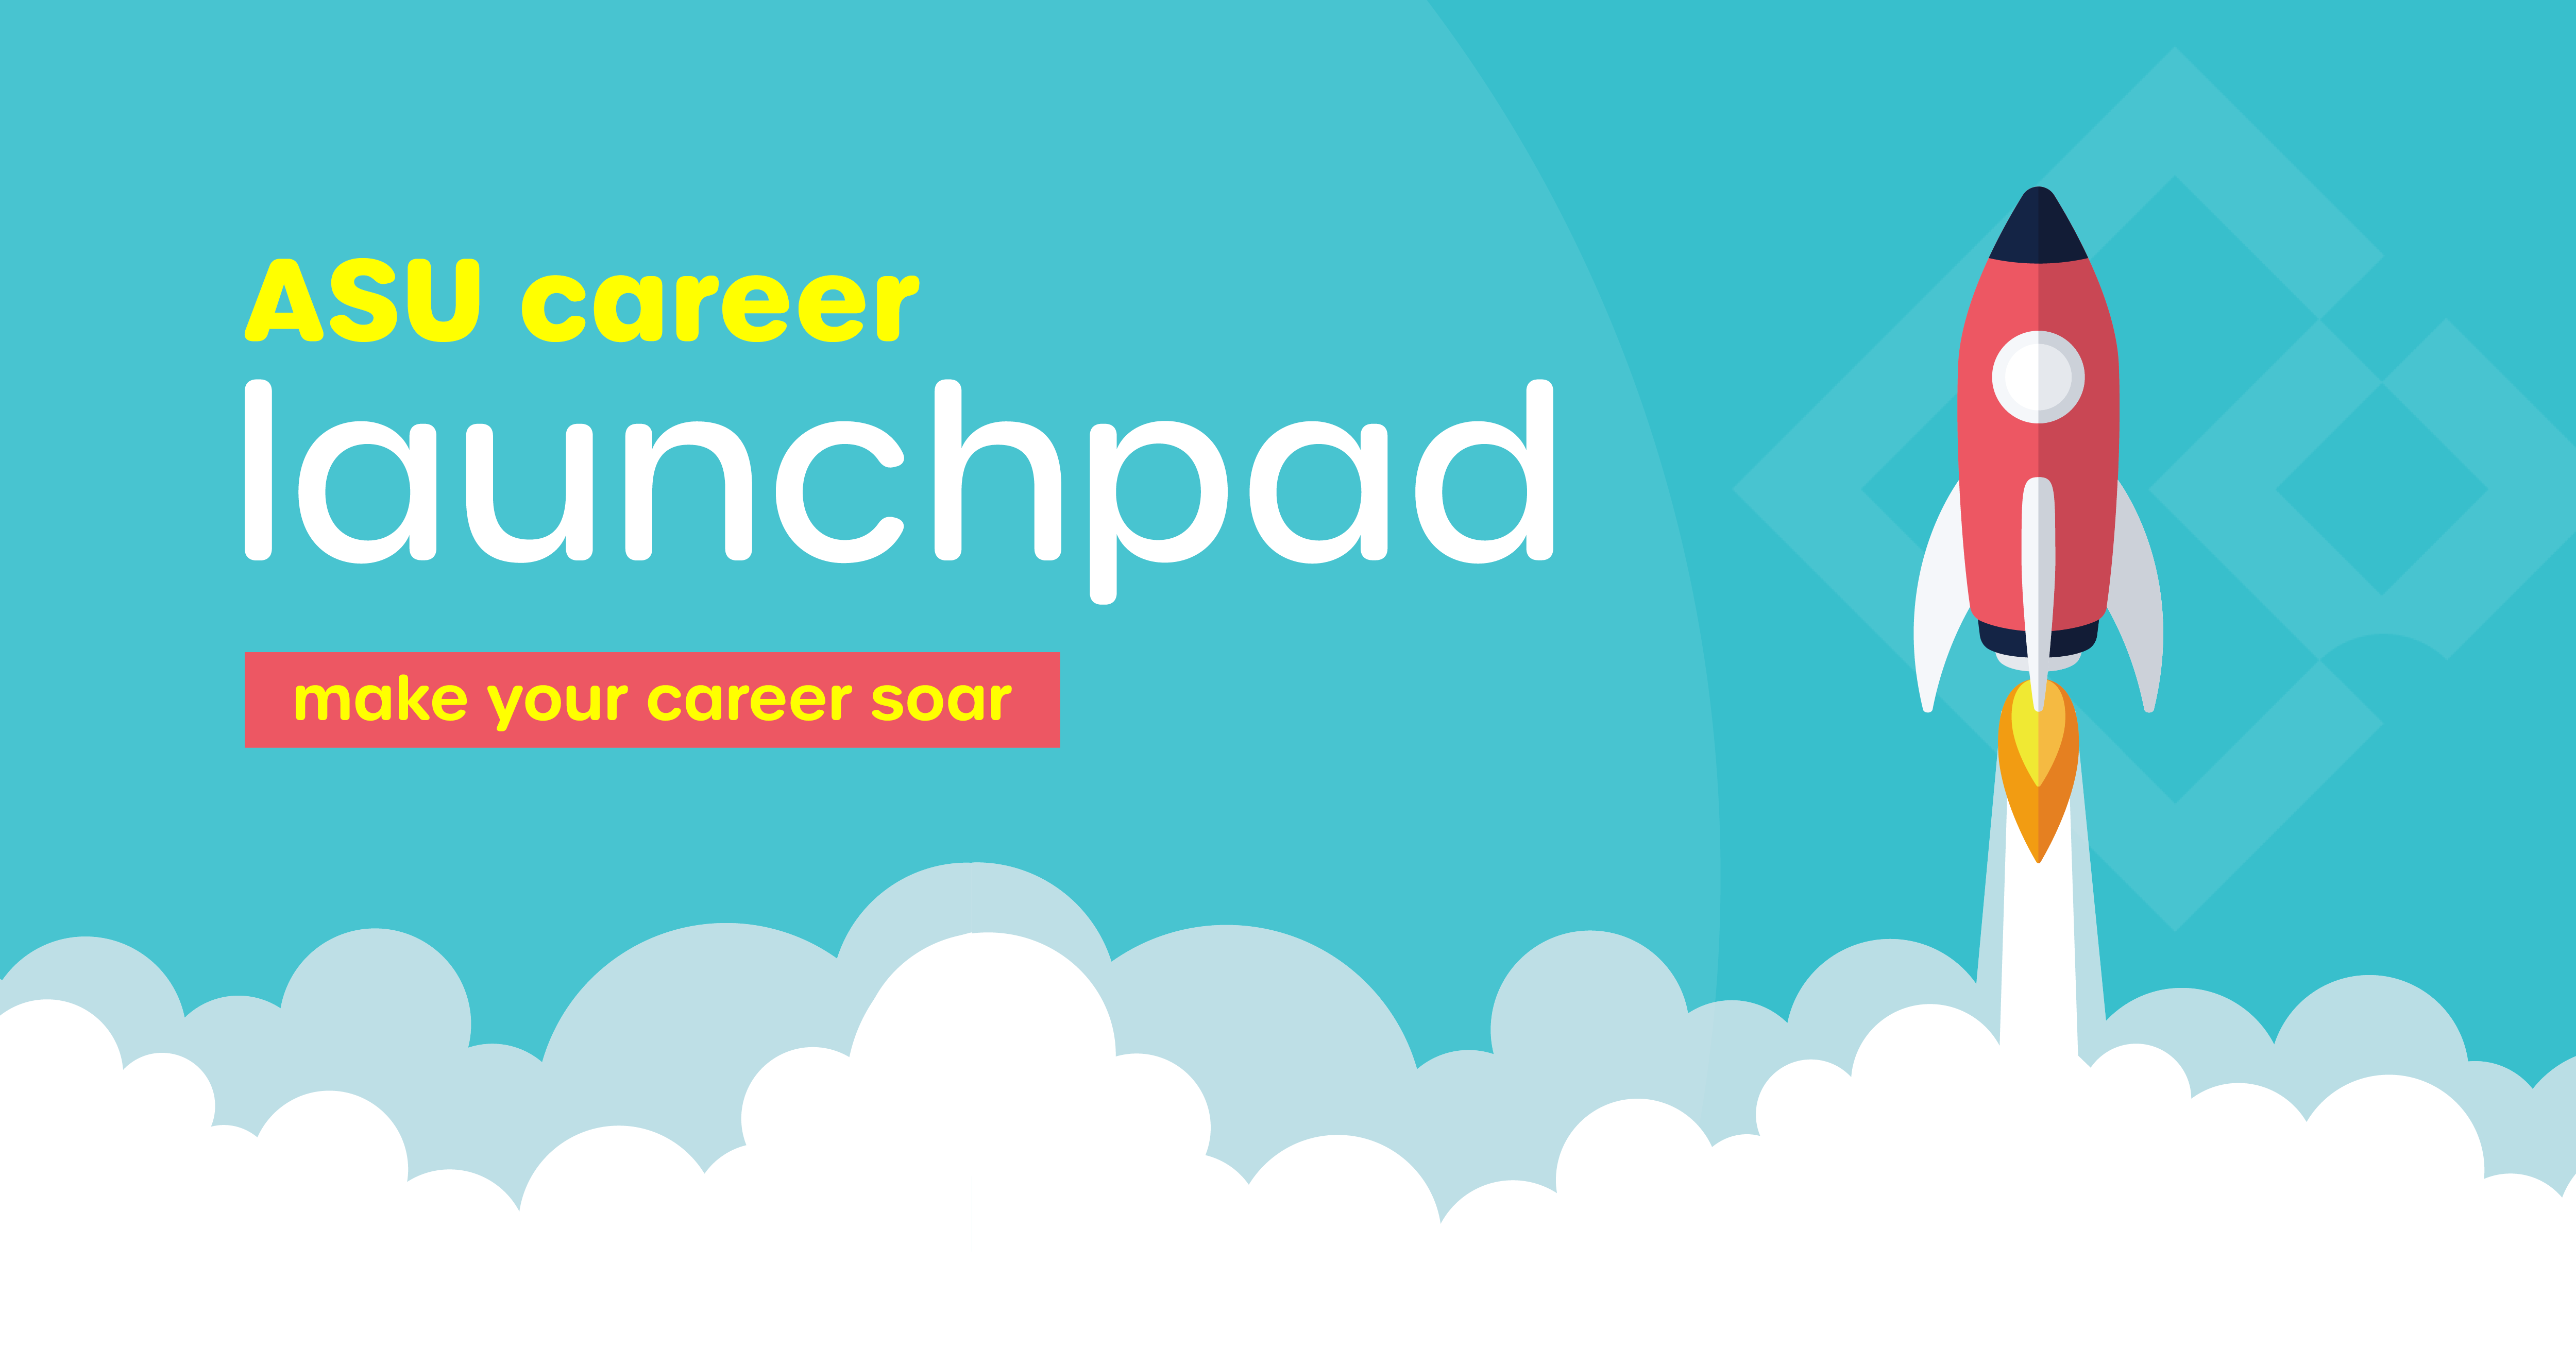 ASU Career Launchpad